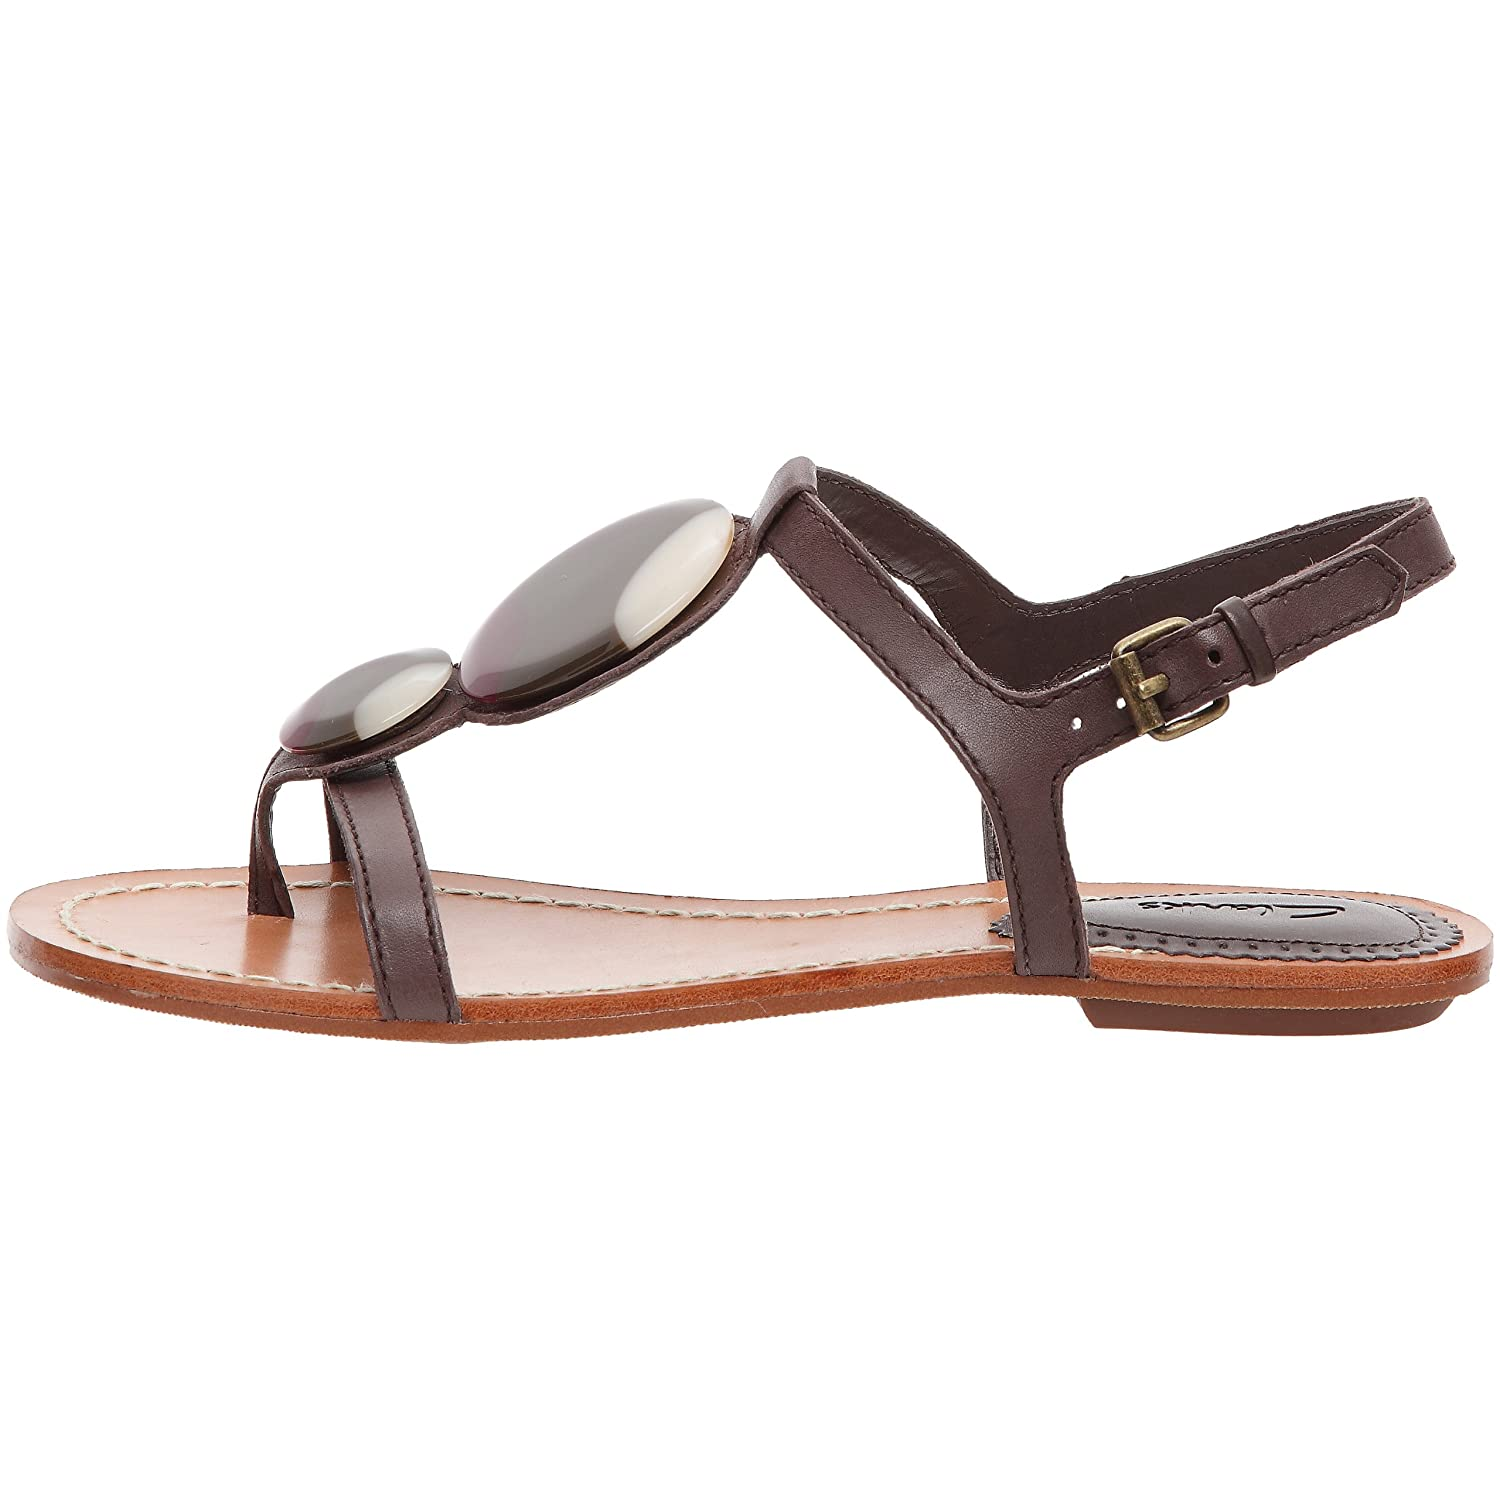 62f75afd10c8 Clarks Women s Fashion Sandals Brown Size  5.5 UK  Amazon.co.uk  Shoes    Bags